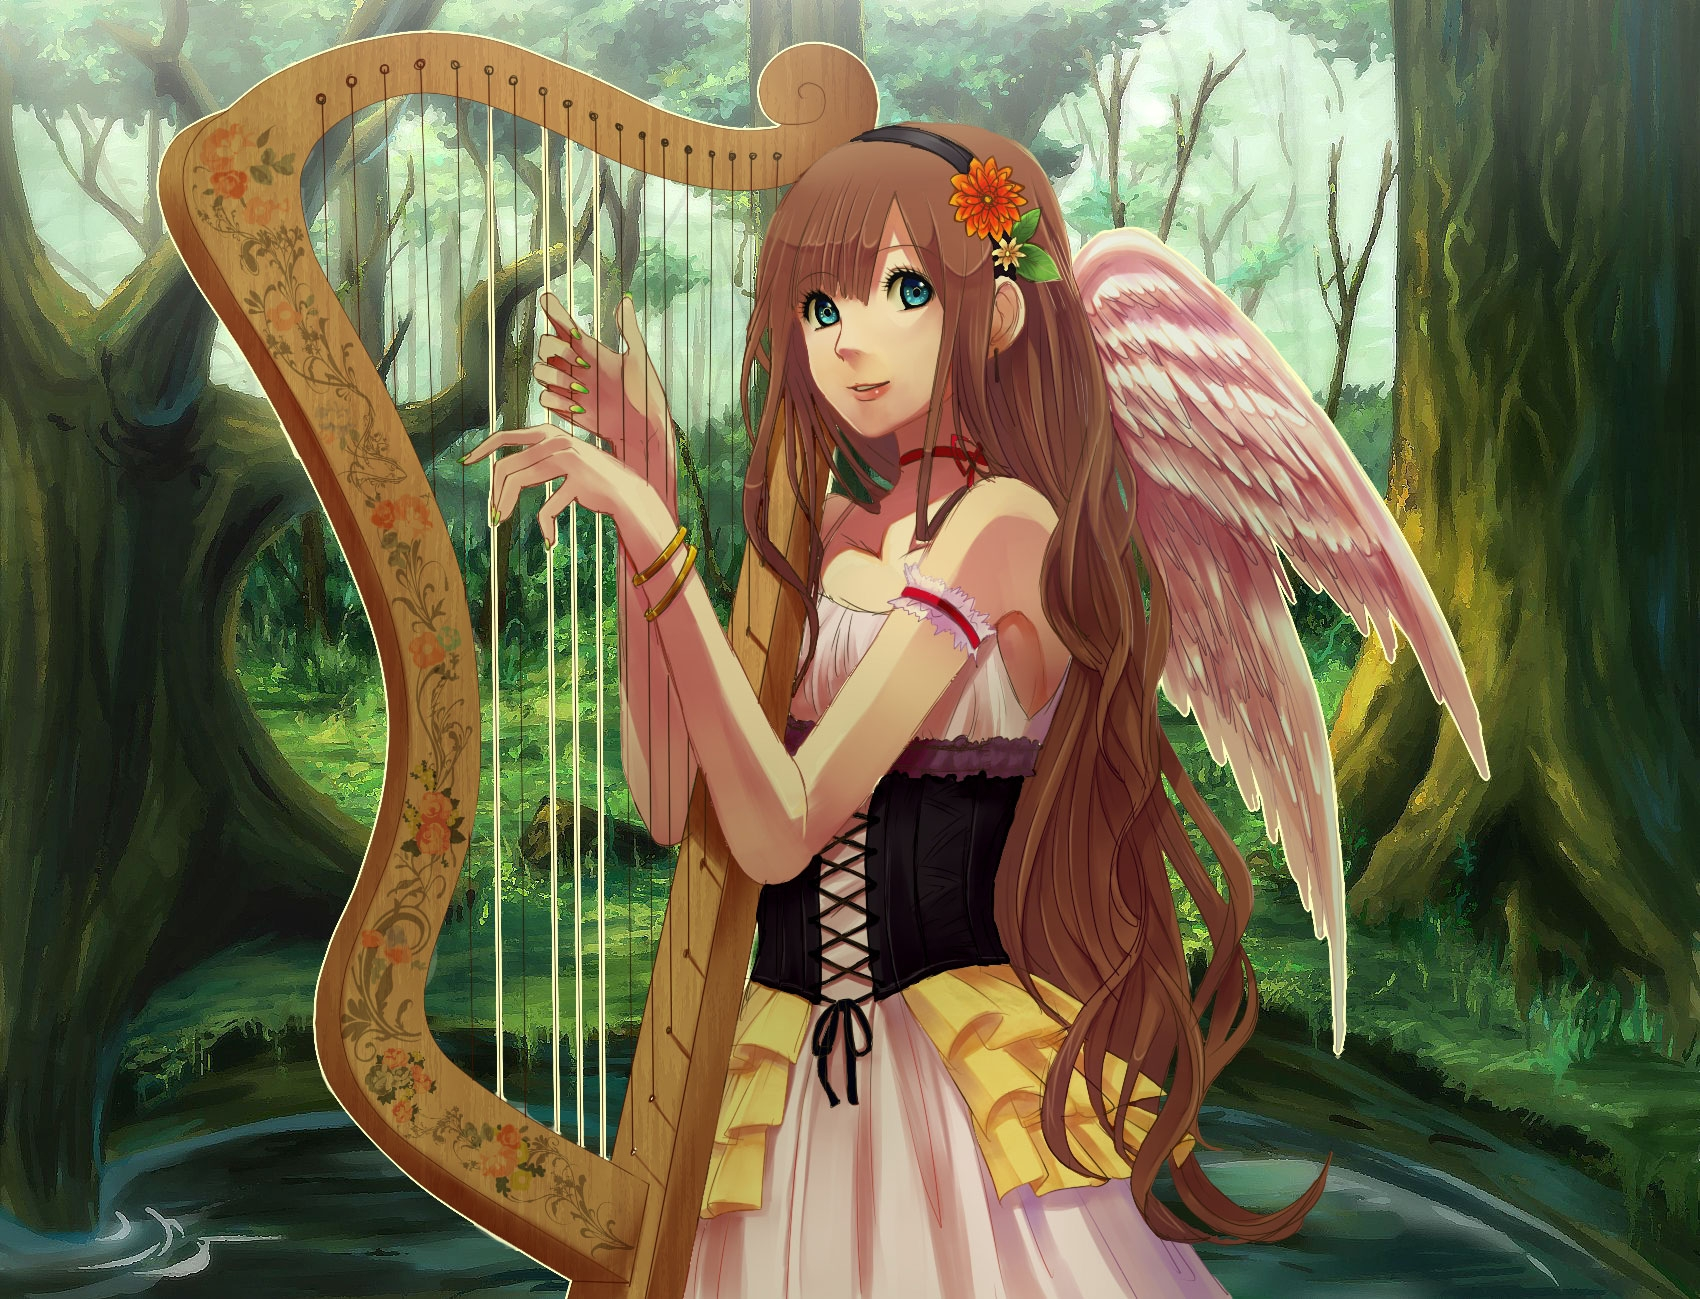 Download wallpapers 1700x1299 girl, harp, wings, smile, nature hd